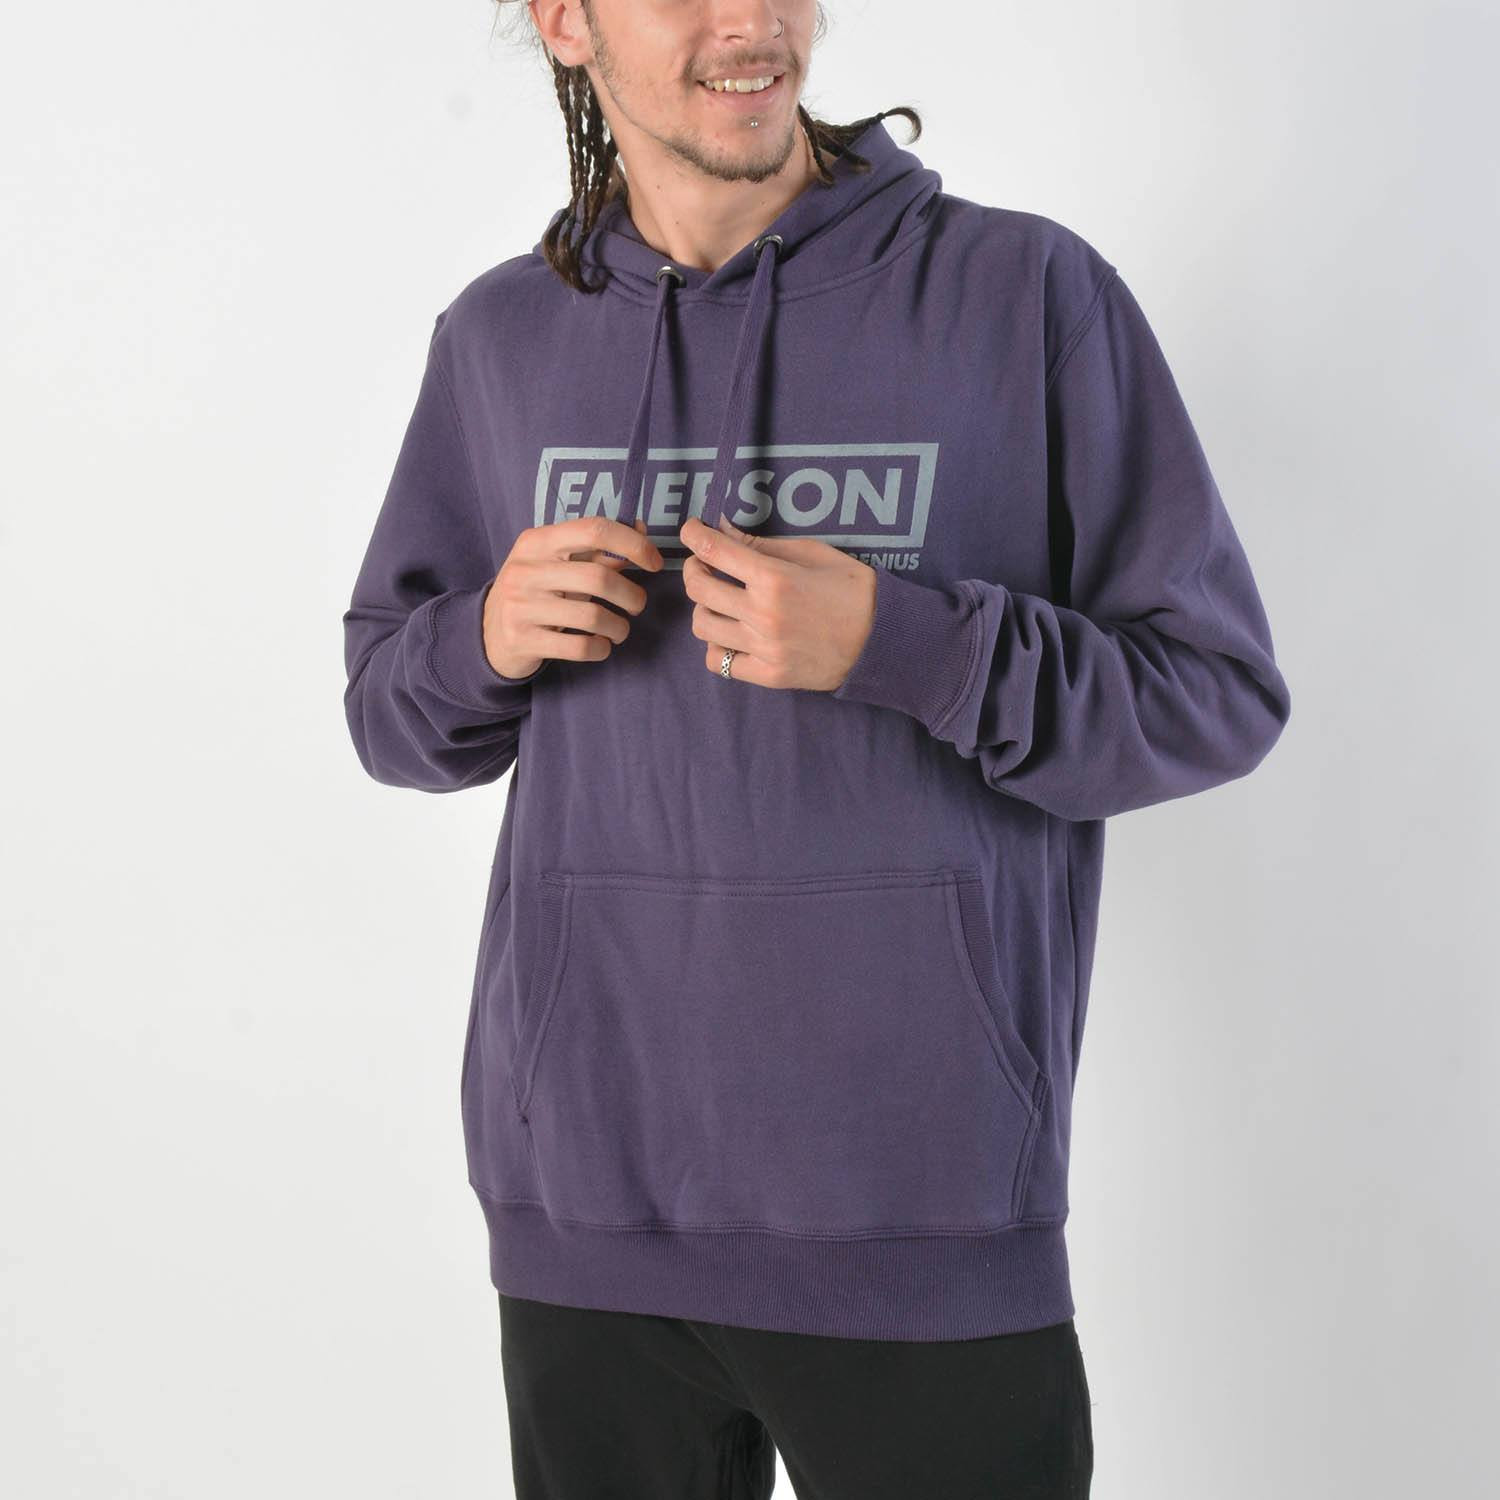 Emerson Men's Hooded Sweat (9000016450_3149)